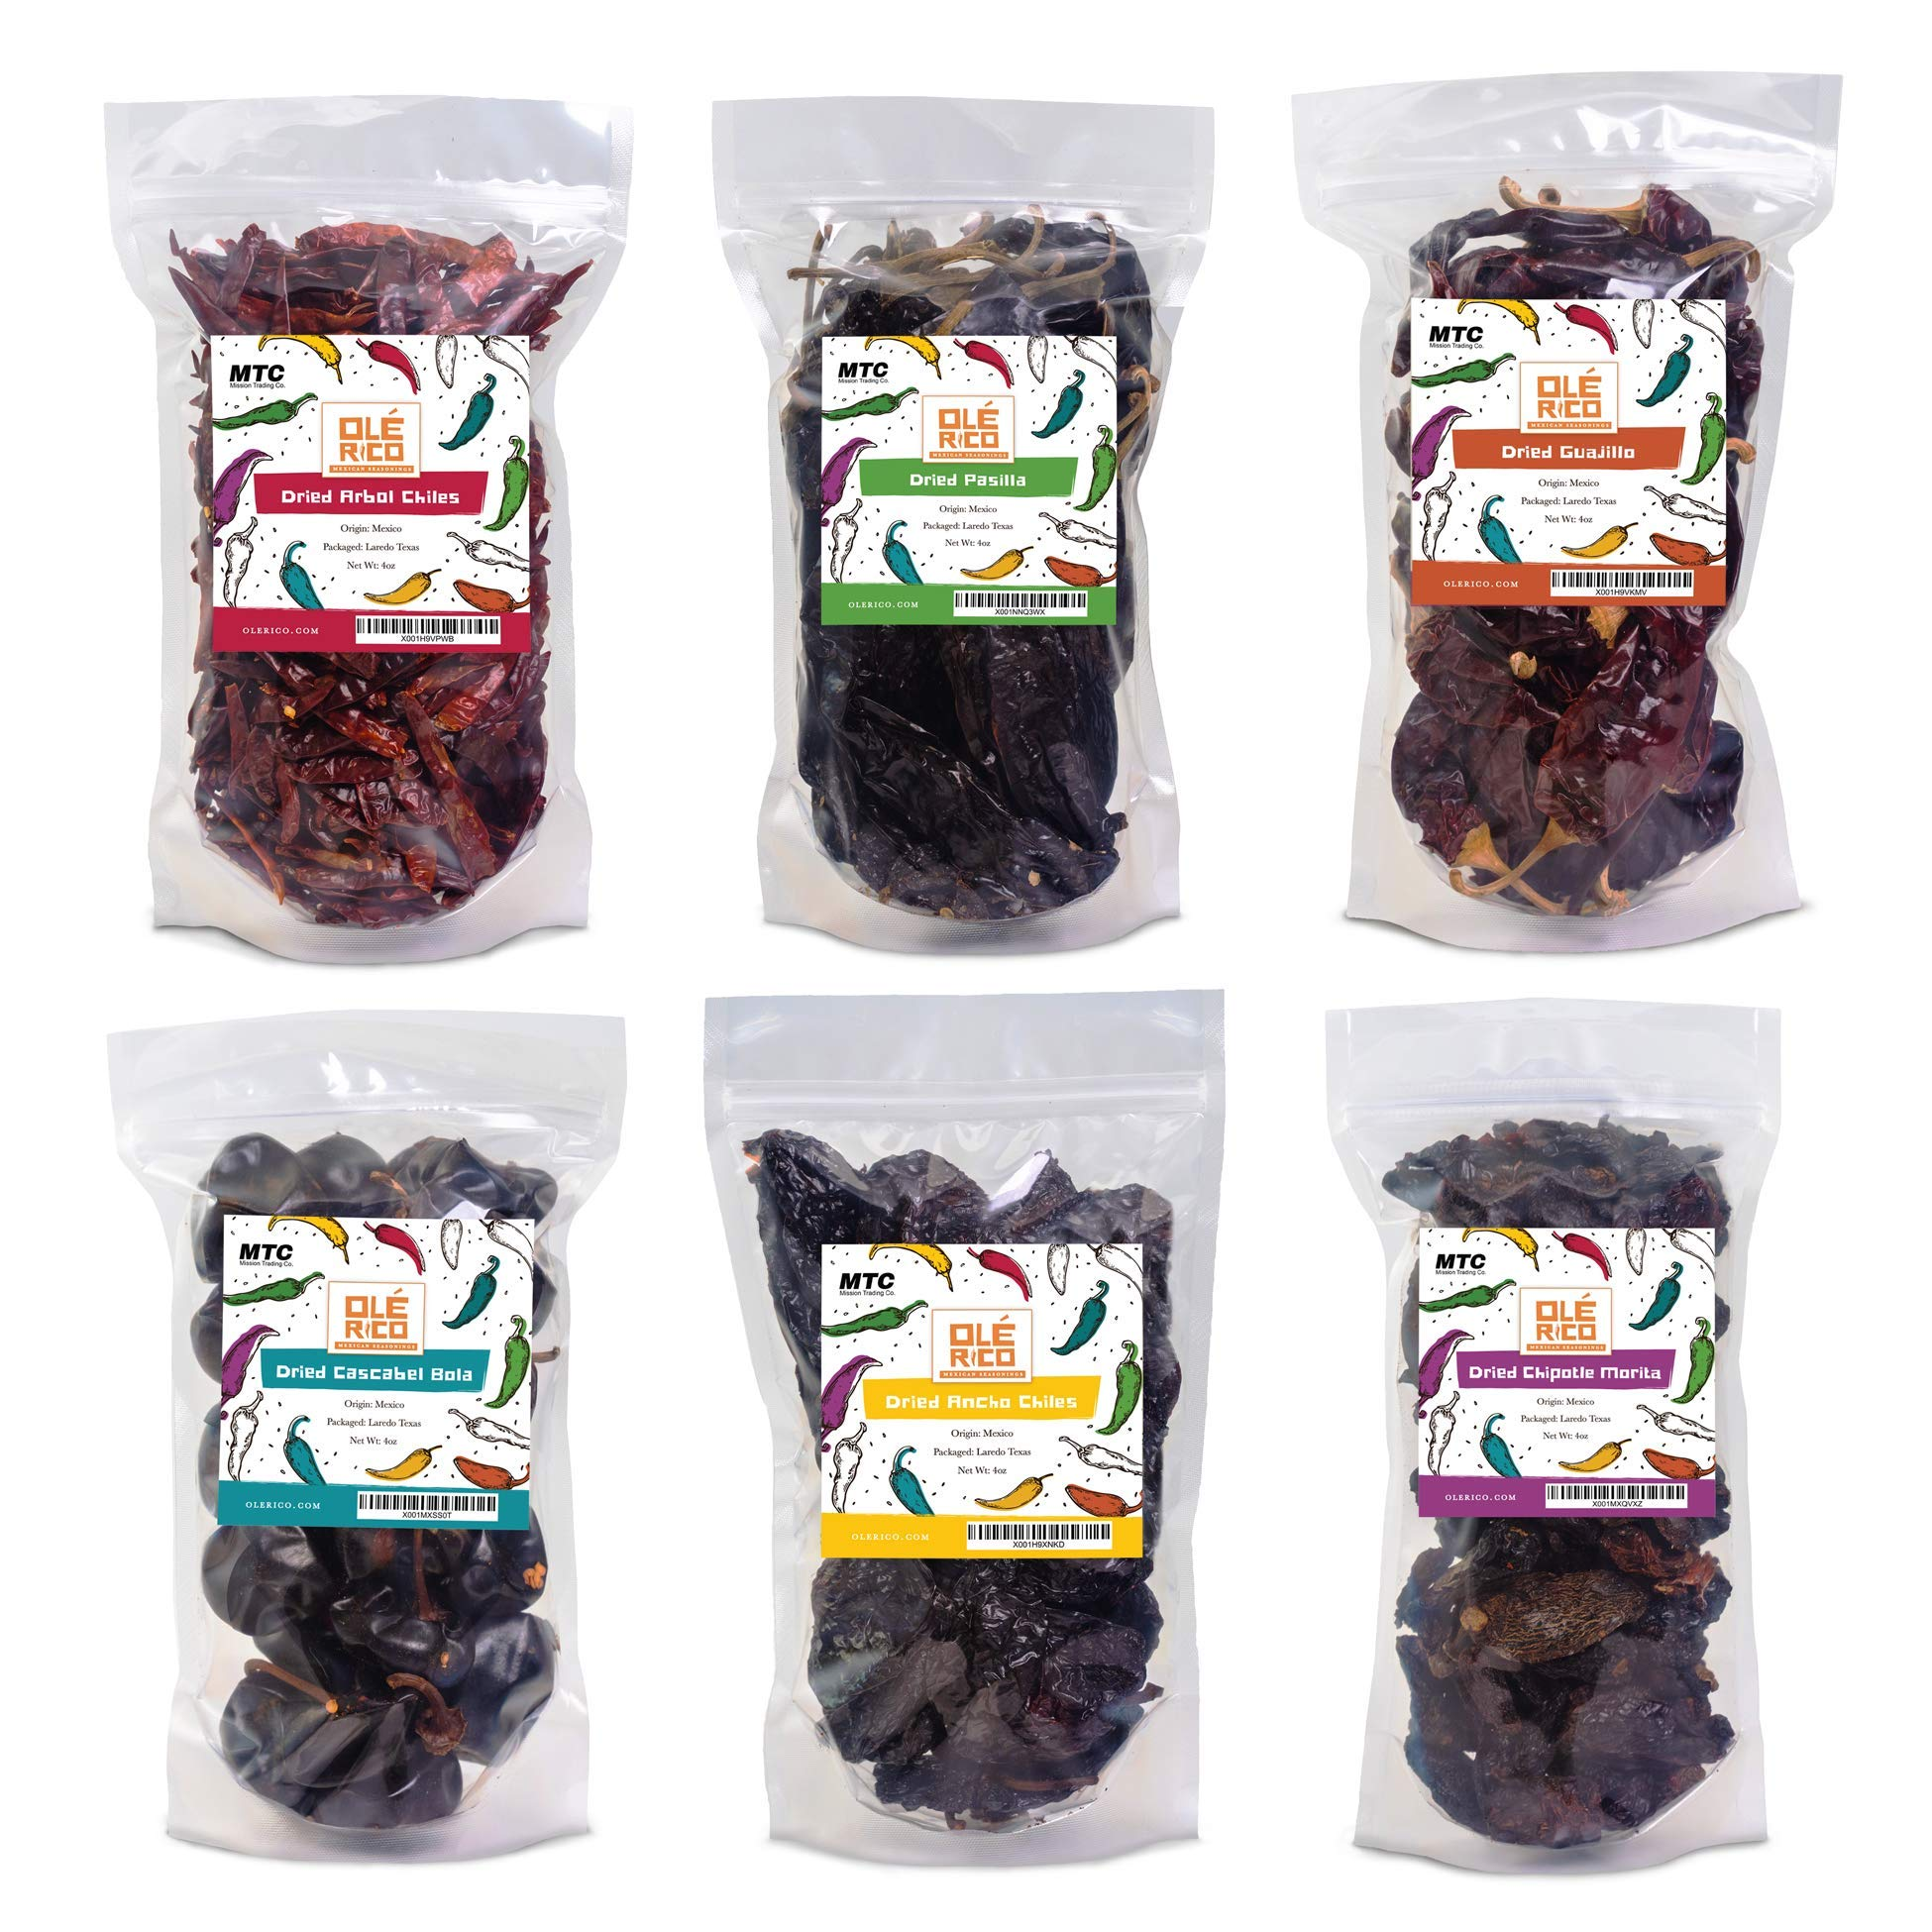 Dried Peppers 6 Pack Bundle - Ancho, Arbol, Guajillo, Pasilla, Chipotle, Cascabel Super Pack of Chiles by Ole Rico